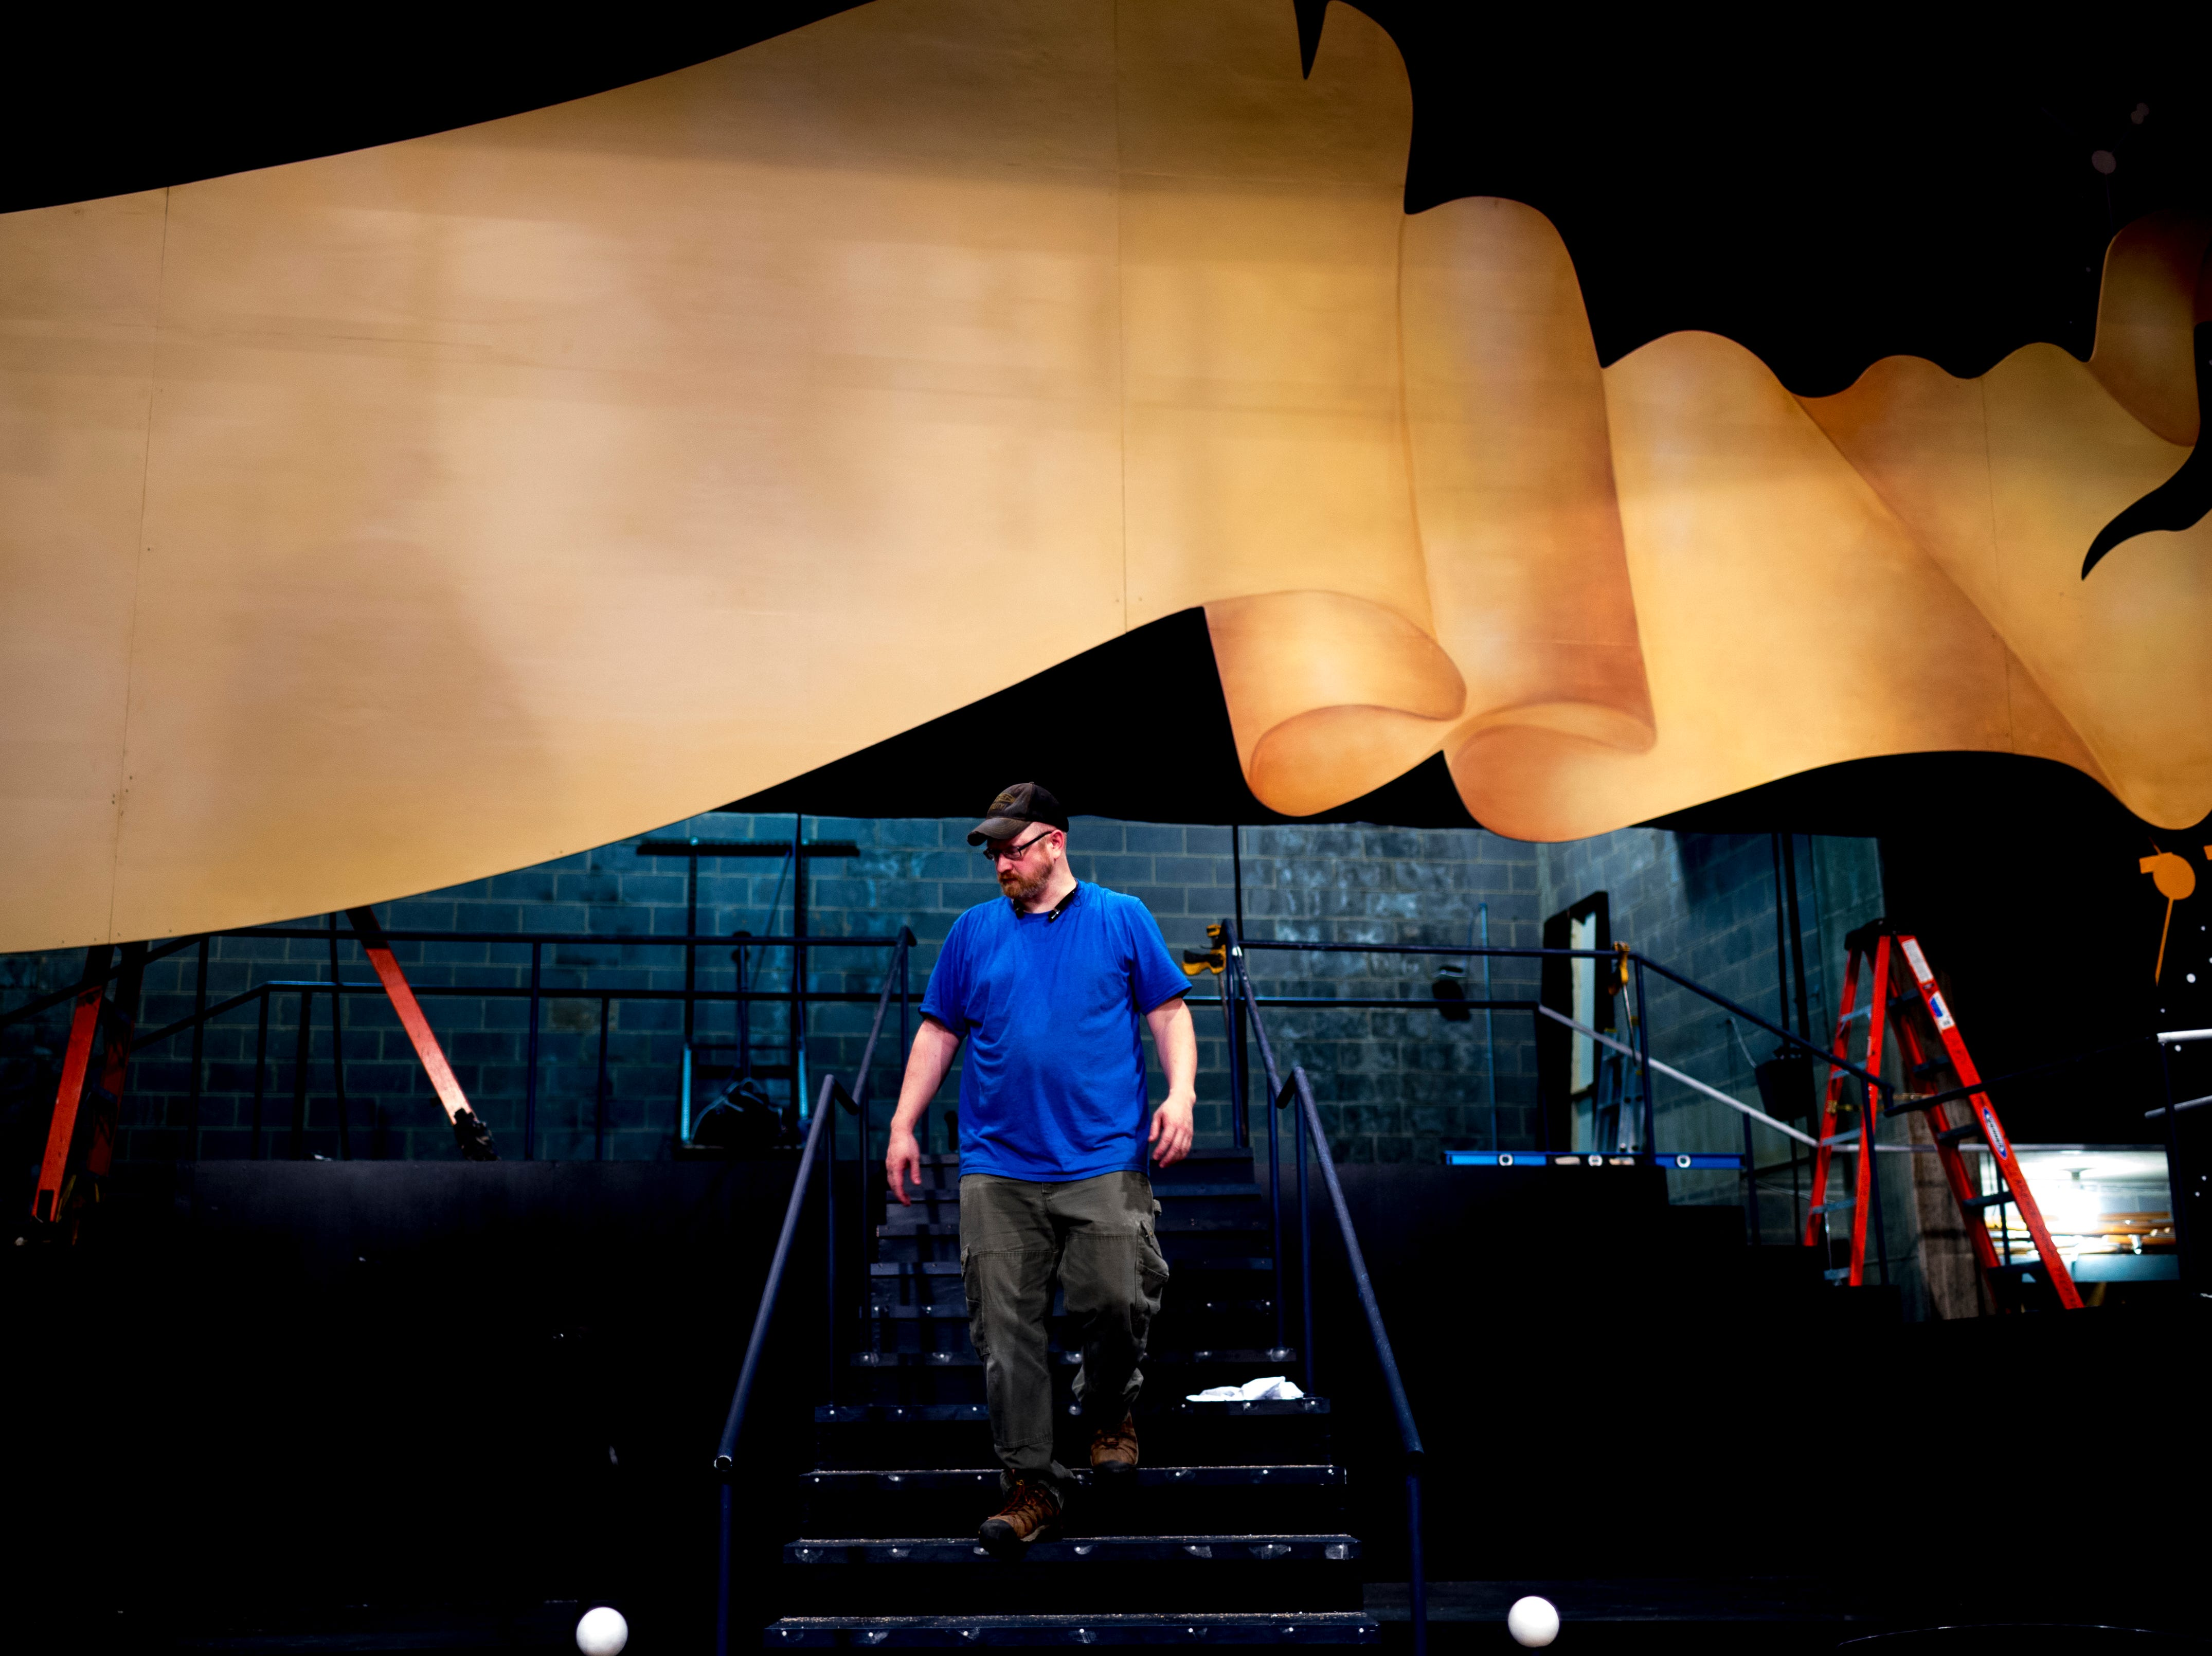 A stage crew worker walks on the stage ahead of opening day for Candide at the Clarence Brown Theatre  in Knoxville, Tennessee on Tuesday, August 14, 2018. Leonard BernsteinÕs acclaimed operetta, Candide, is to open Friday, August 31, with previews beginning August 29.